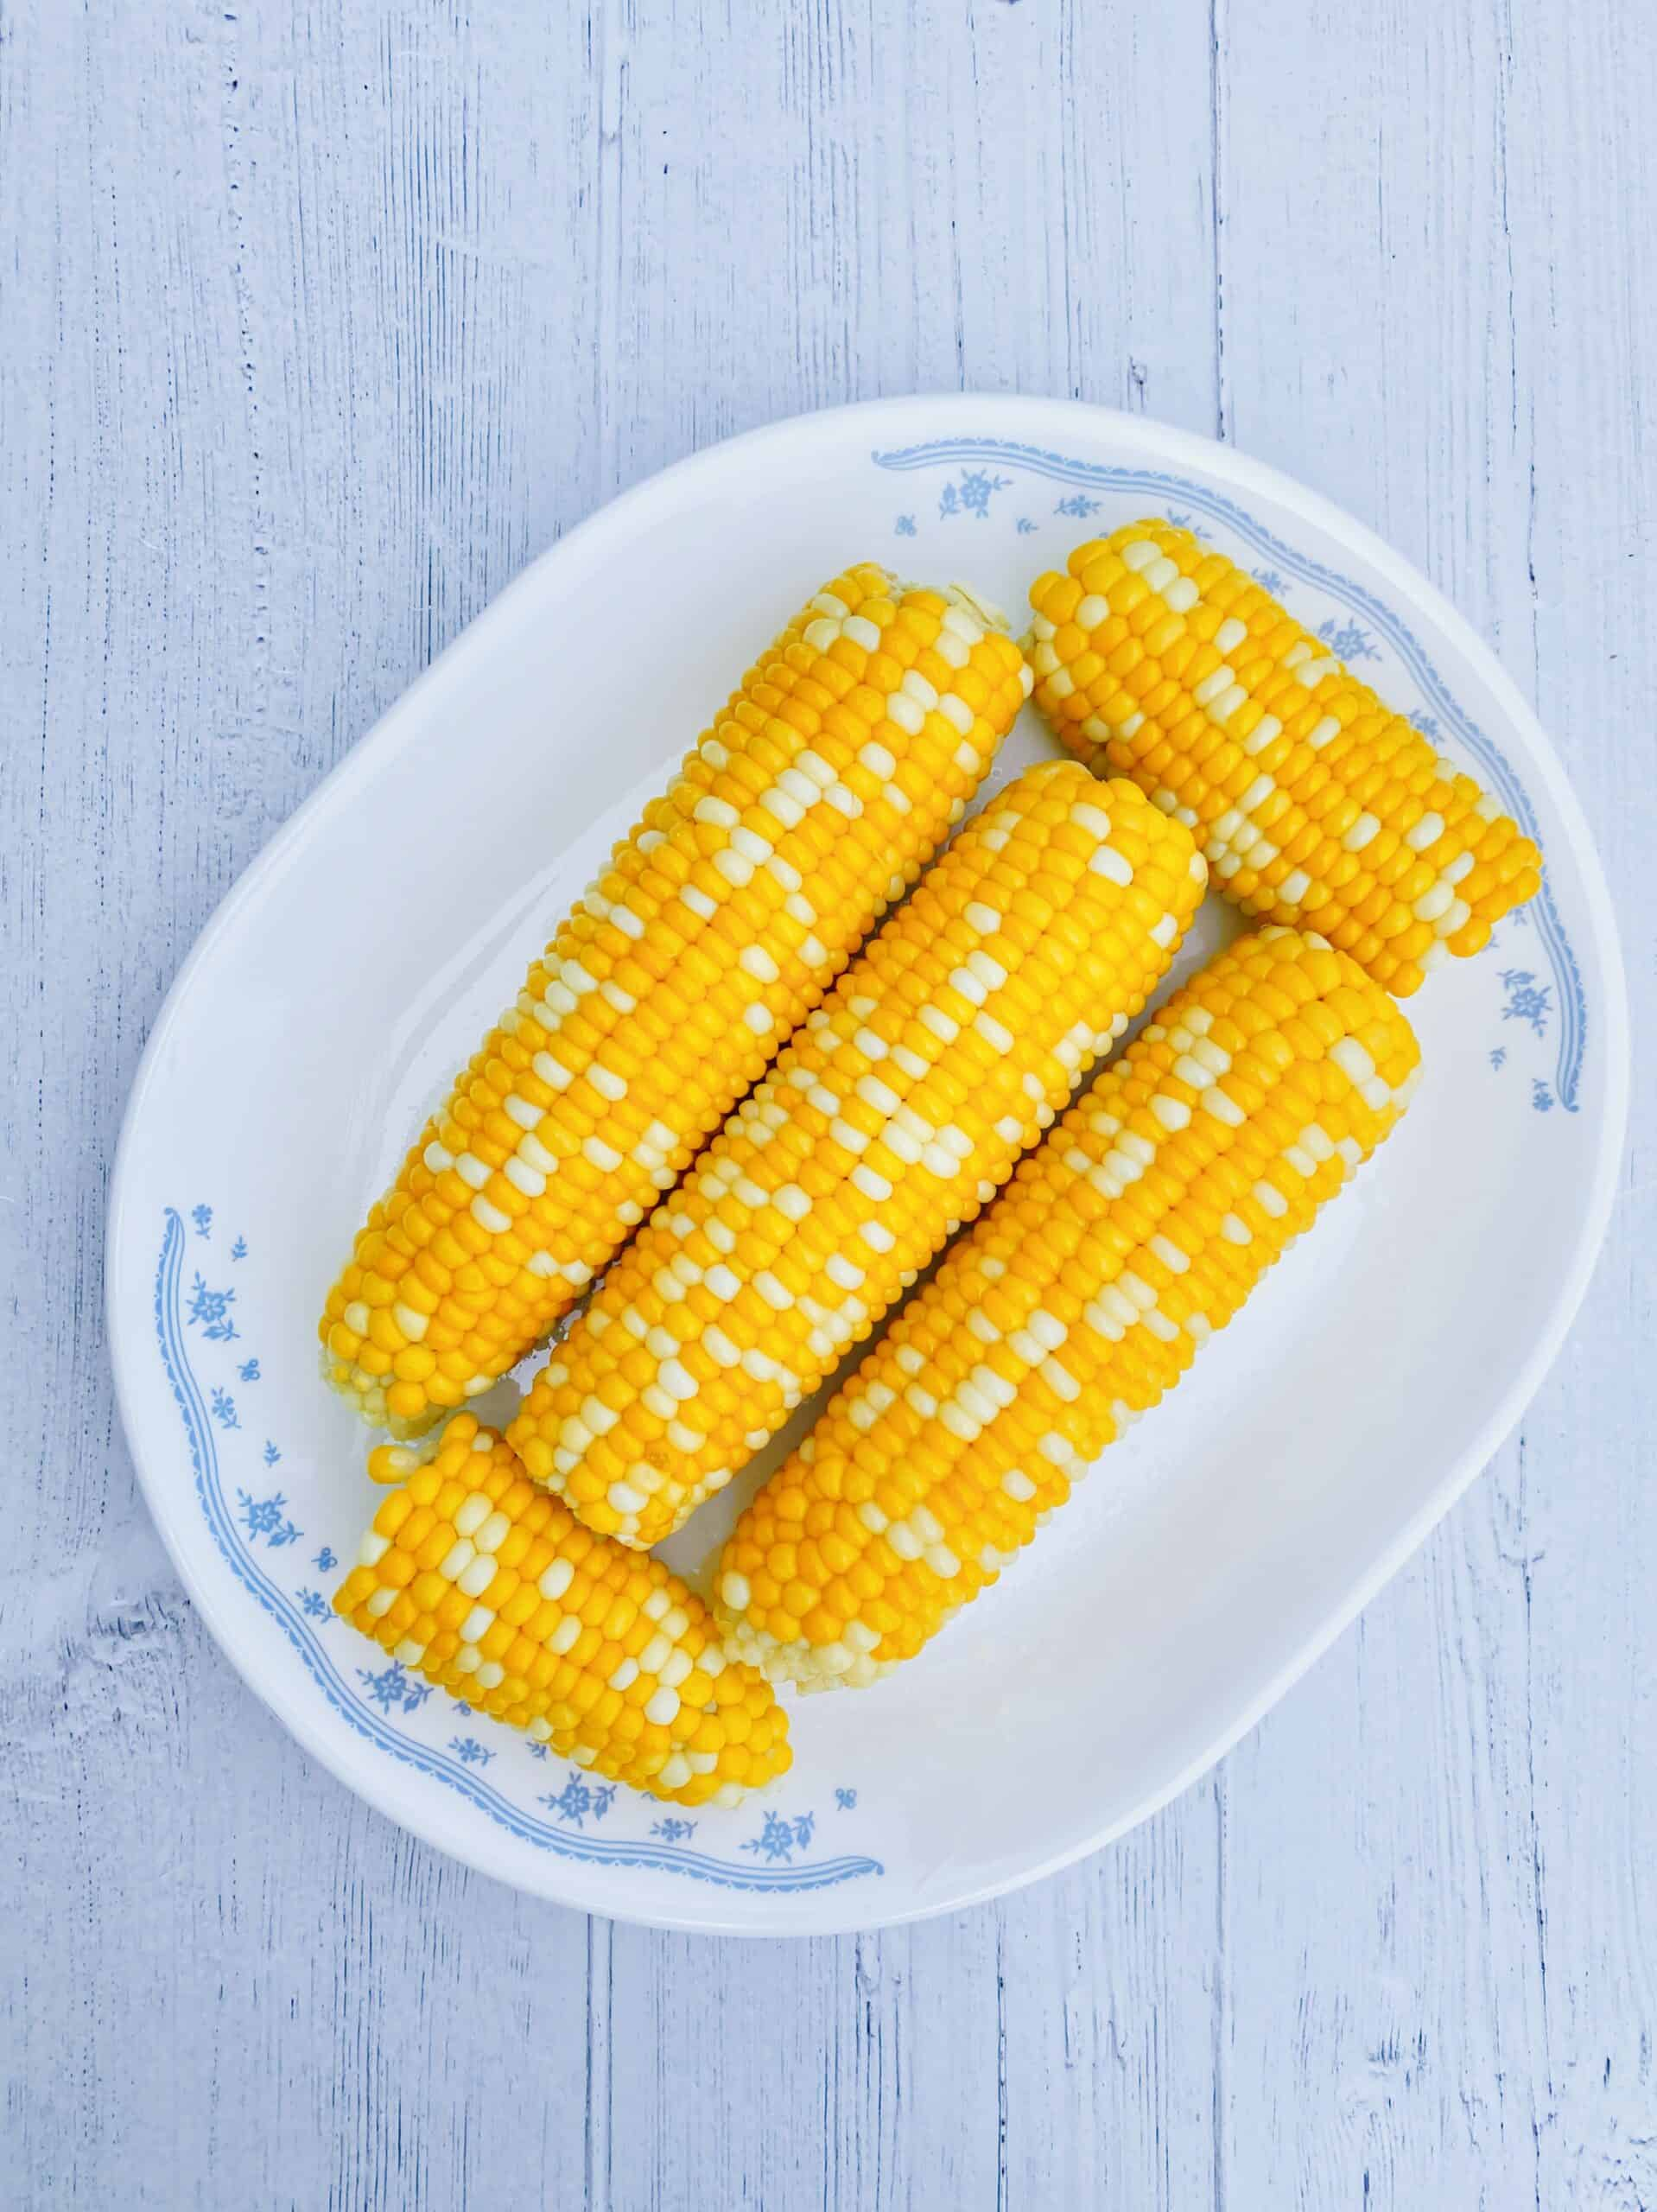 Corn on the cob on a flowered plate